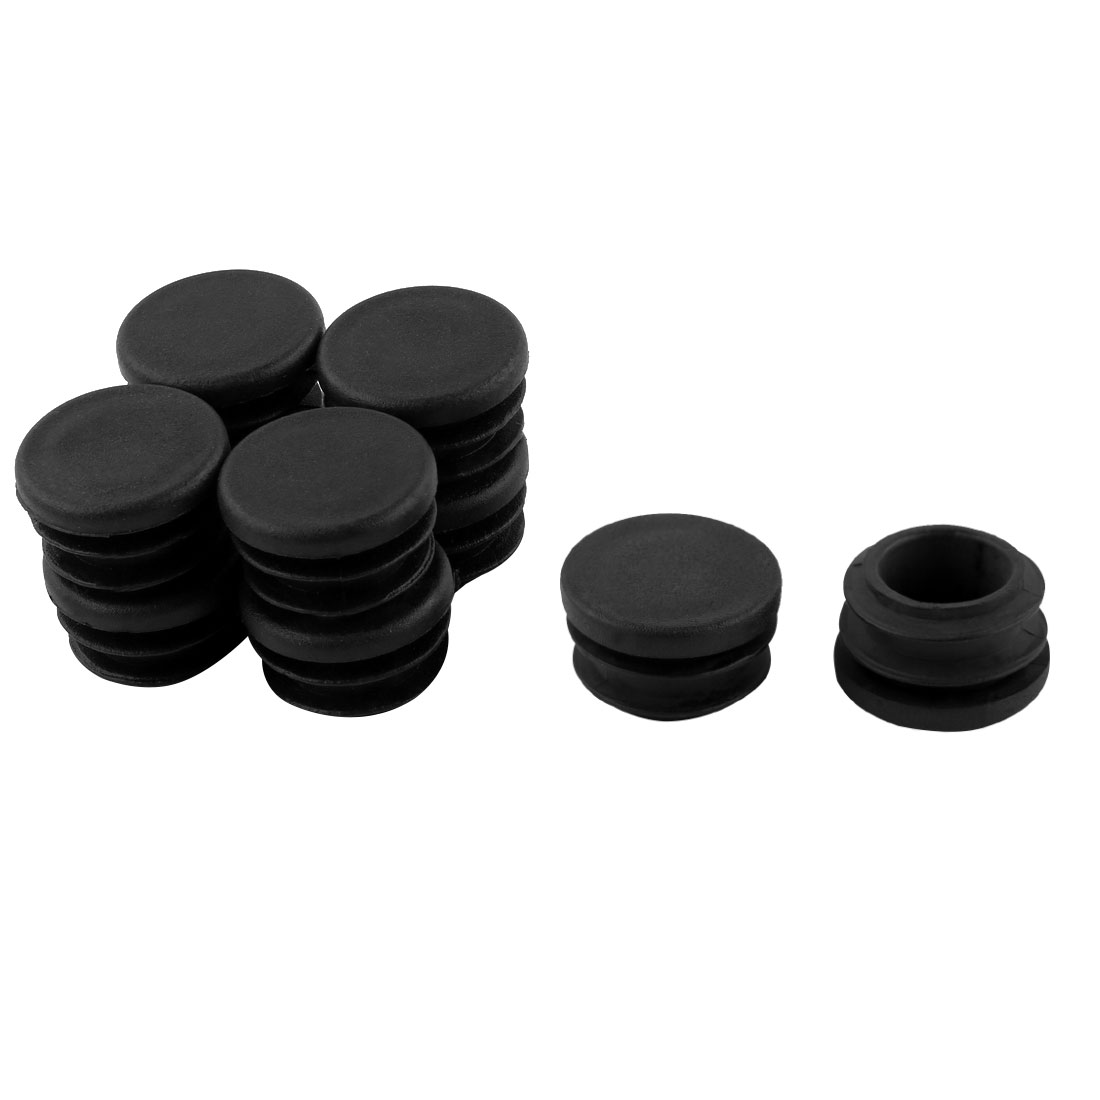 10pcs Black 22mm Diameter Blanking End Cap Covers Tubing Pipe Inserts